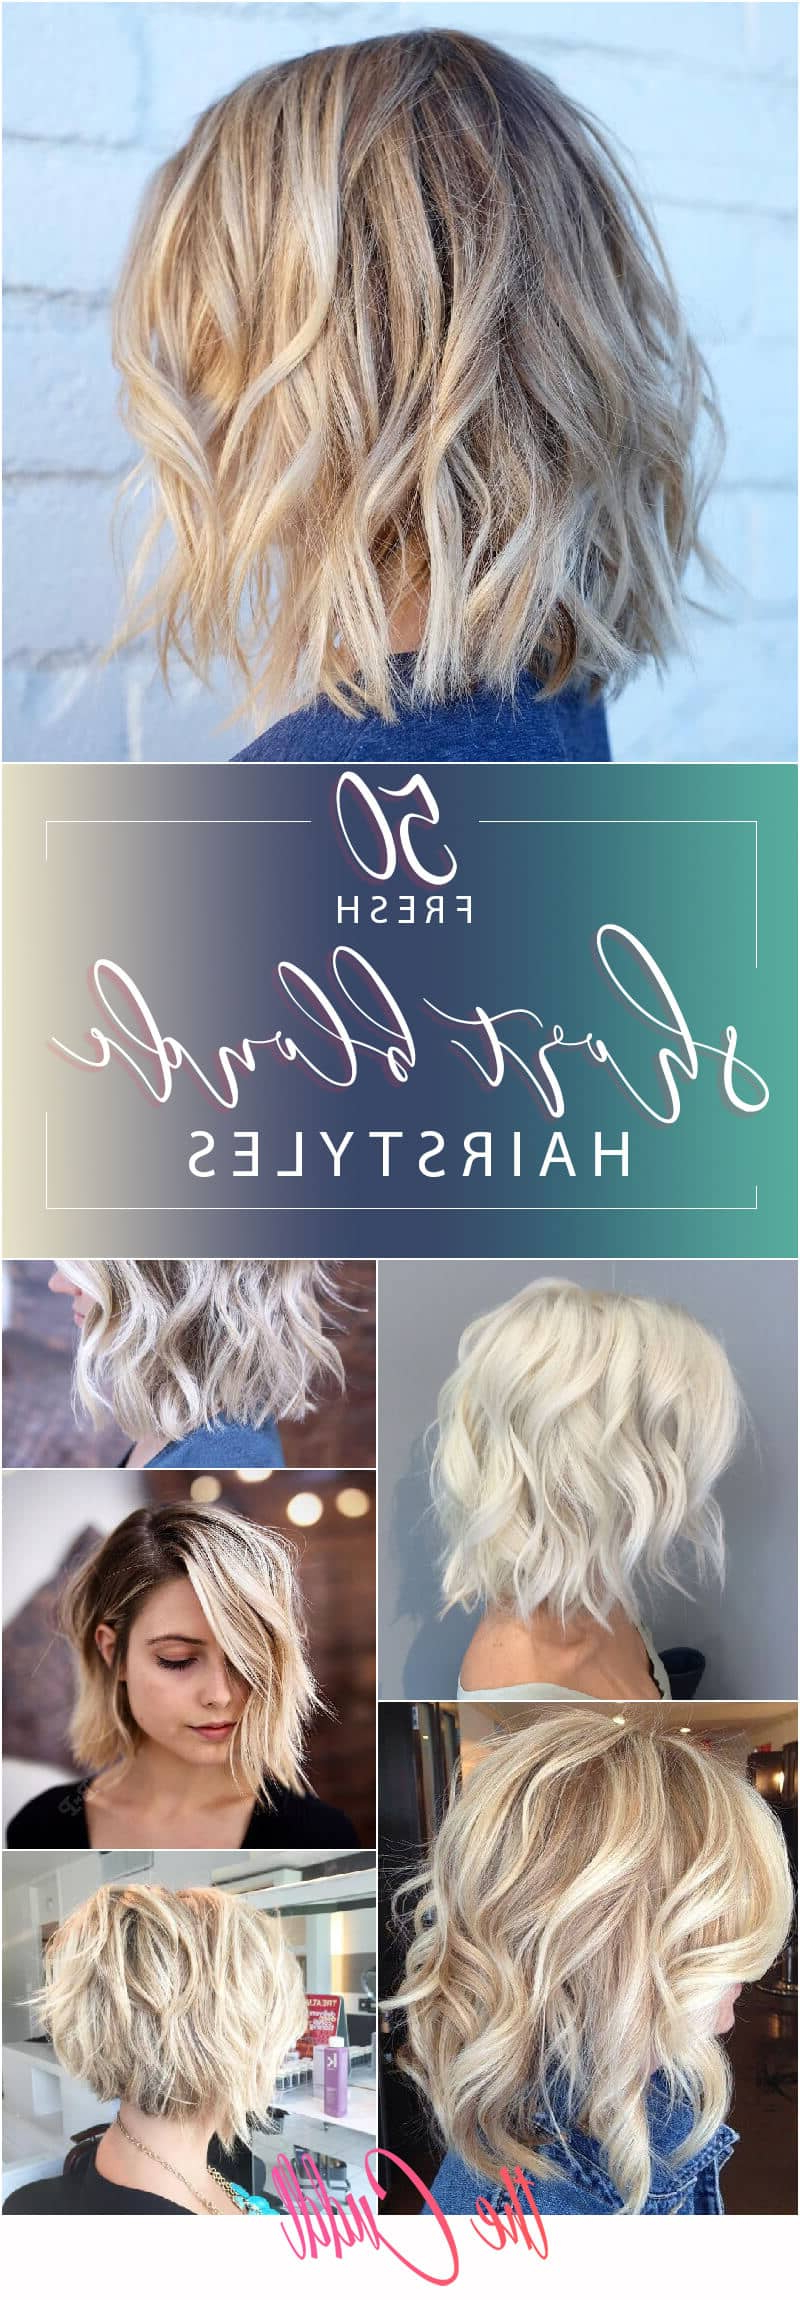 50 Fresh Short Blonde Hair Ideas To Update Your Style In 2019 Intended For Most Up To Date Blonde Textured Haircuts With Angled Layers (Gallery 11 of 20)